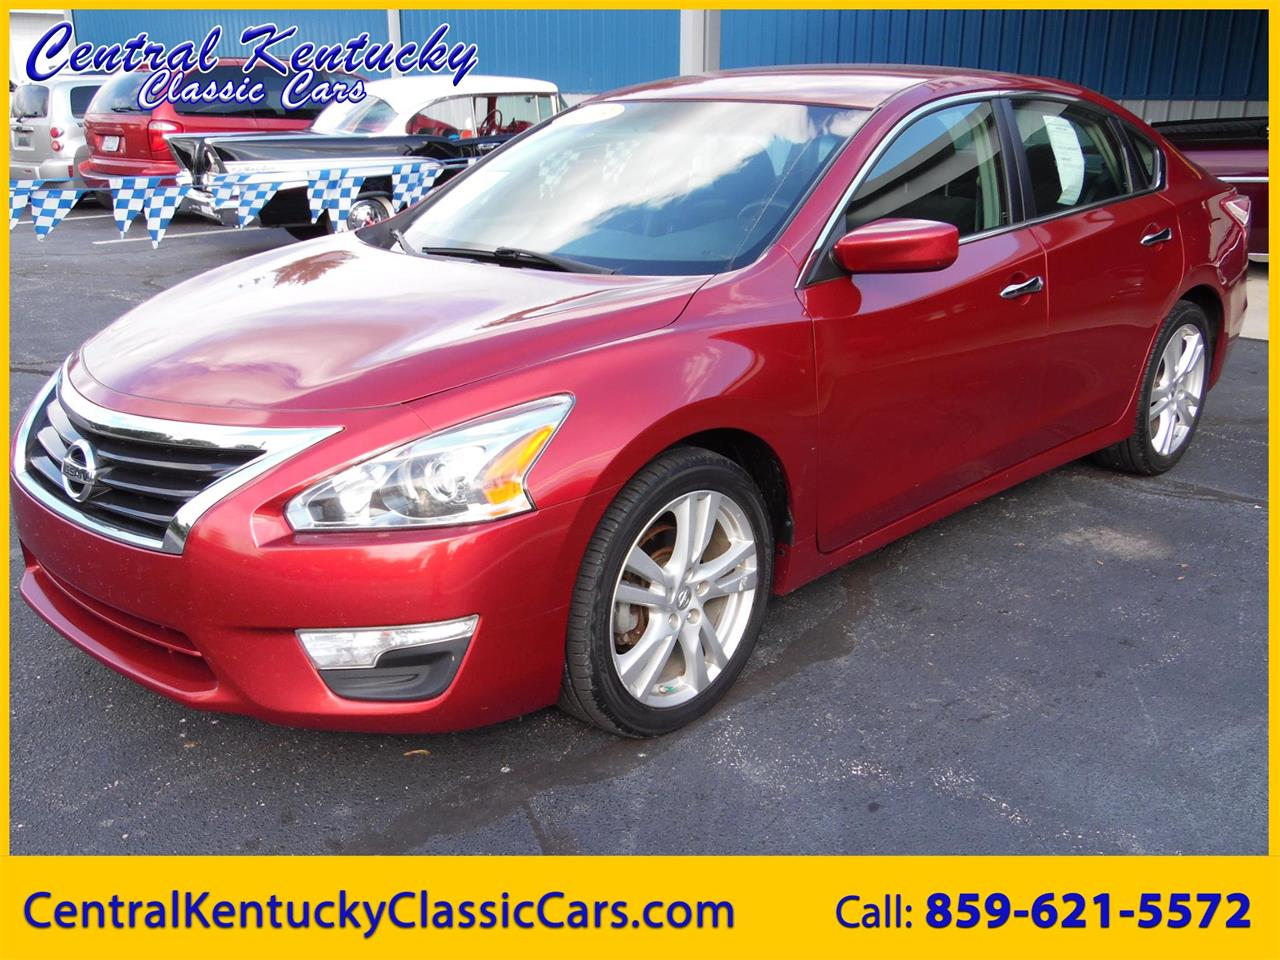 Large Picture of '13 Nissan Altima - $10,760.00 Offered by Central Kentucky Classic Cars LLC  - Q36A